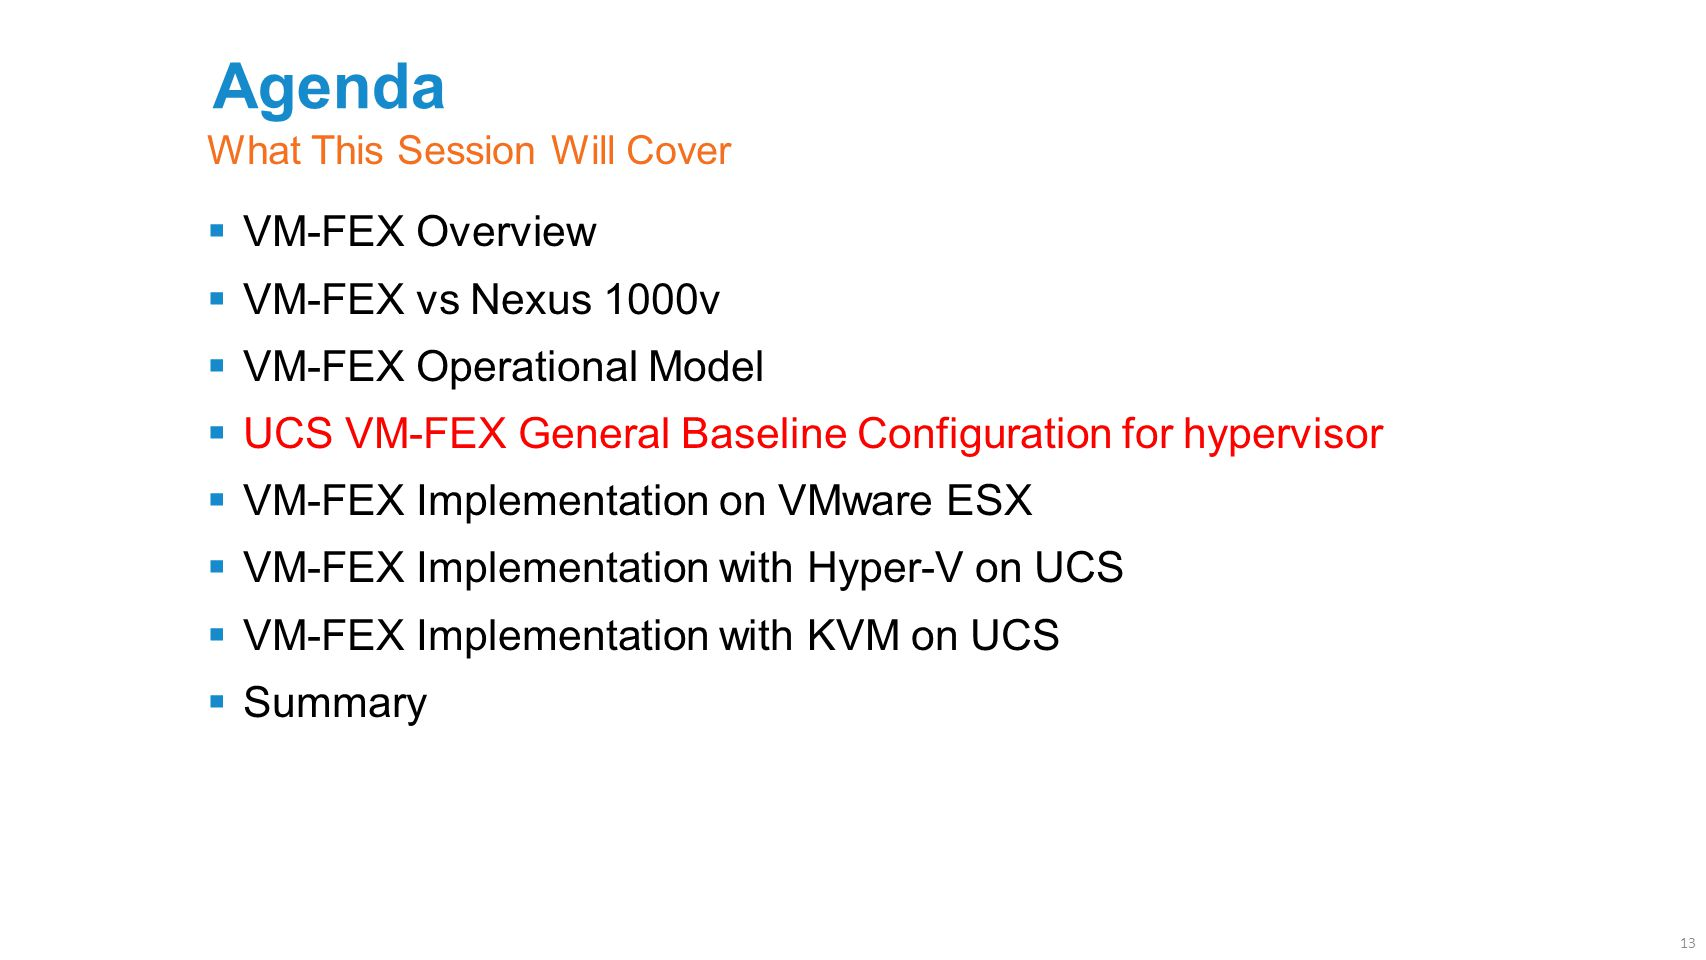 Agenda  VM-FEX Overview  VM-FEX vs Nexus 1000v  VM-FEX Operational Model  UCS VM-FEX General Baseline Configuration for hypervisor  VM-FEX Implementation on VMware ESX  VM-FEX Implementation with Hyper-V on UCS  VM-FEX Implementation with KVM on UCS  Summary What This Session Will Cover 13